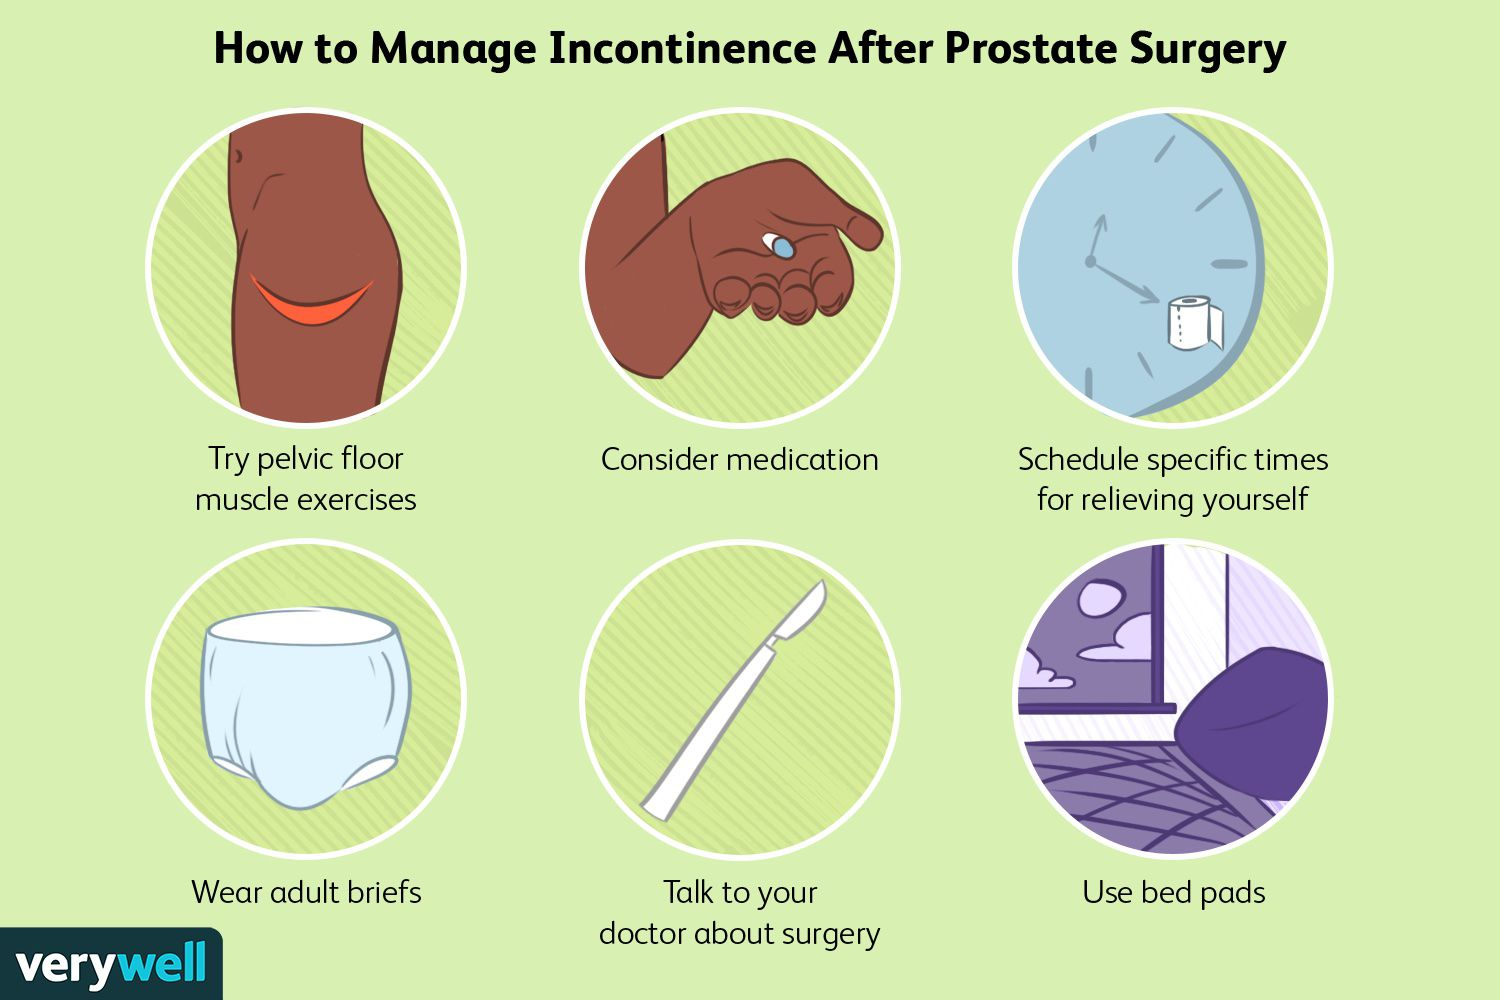 How to Manage Incontinence After Prostate Surgery